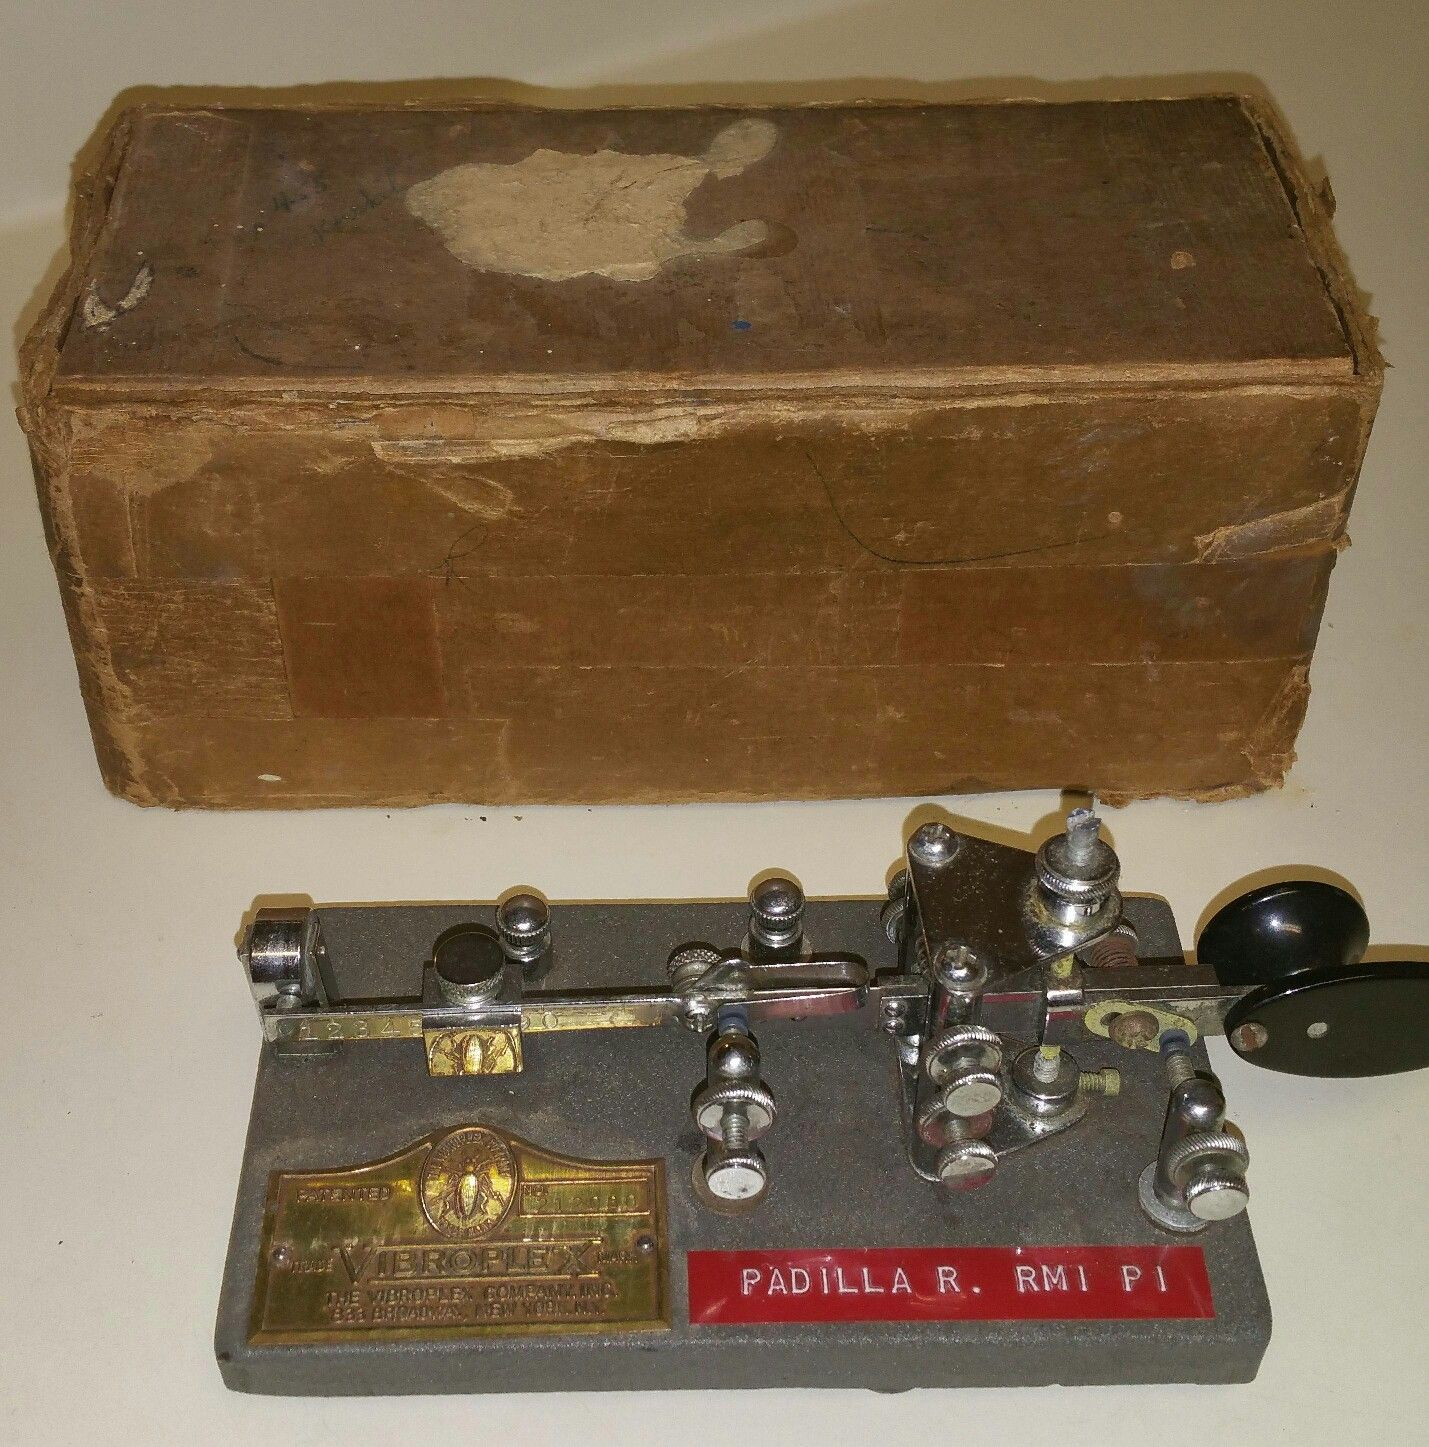 Vibroplex Champion Bug & Original Box 1960 SN# 212090 Telegraph Key